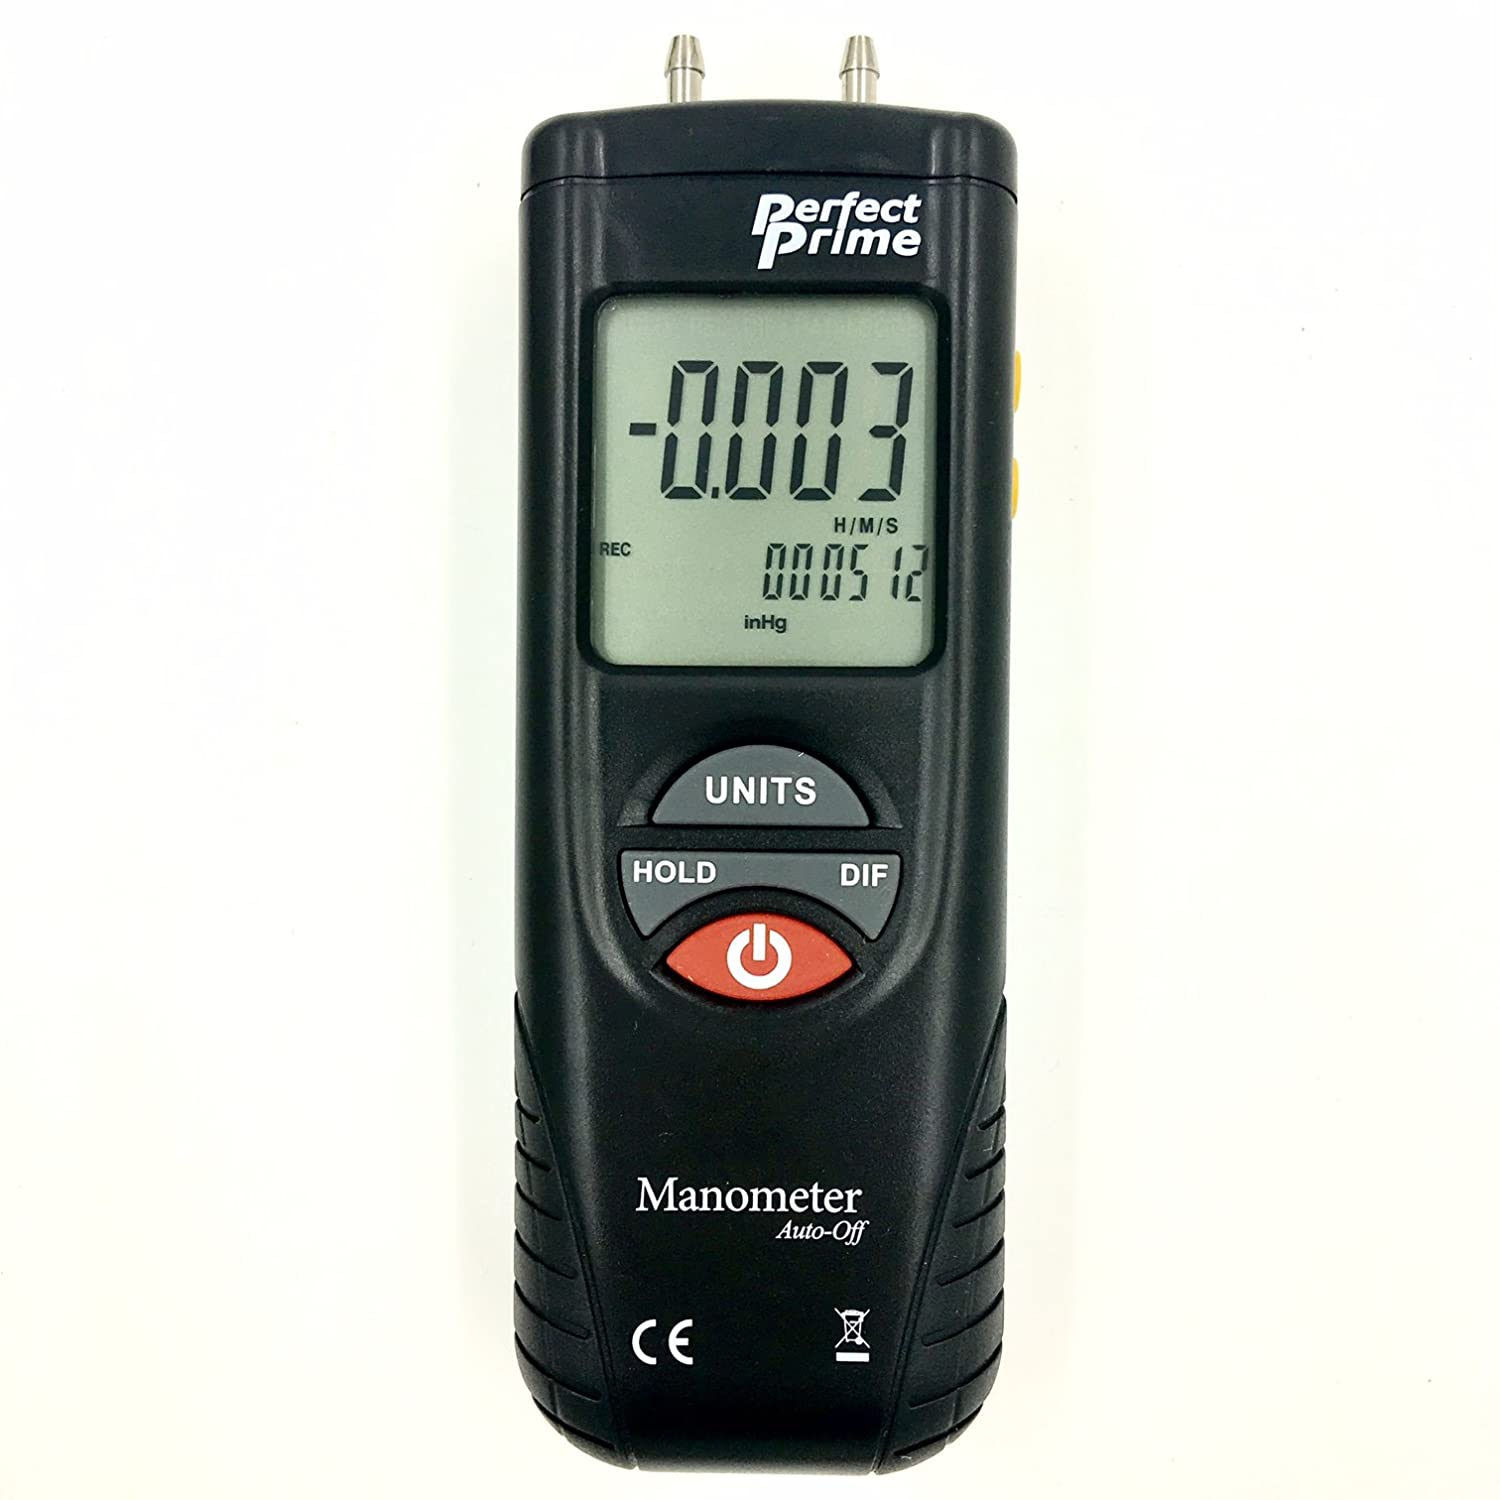 Perfect-Prime AR1890P1, Digital Air Pressure Manometer to Measure Gauge & Differential Pressure ±13.79kPa / ±2 psi / ±55.4 H2O with 304 Stainless Steel Static Tube 5.13' x 2.34' Length